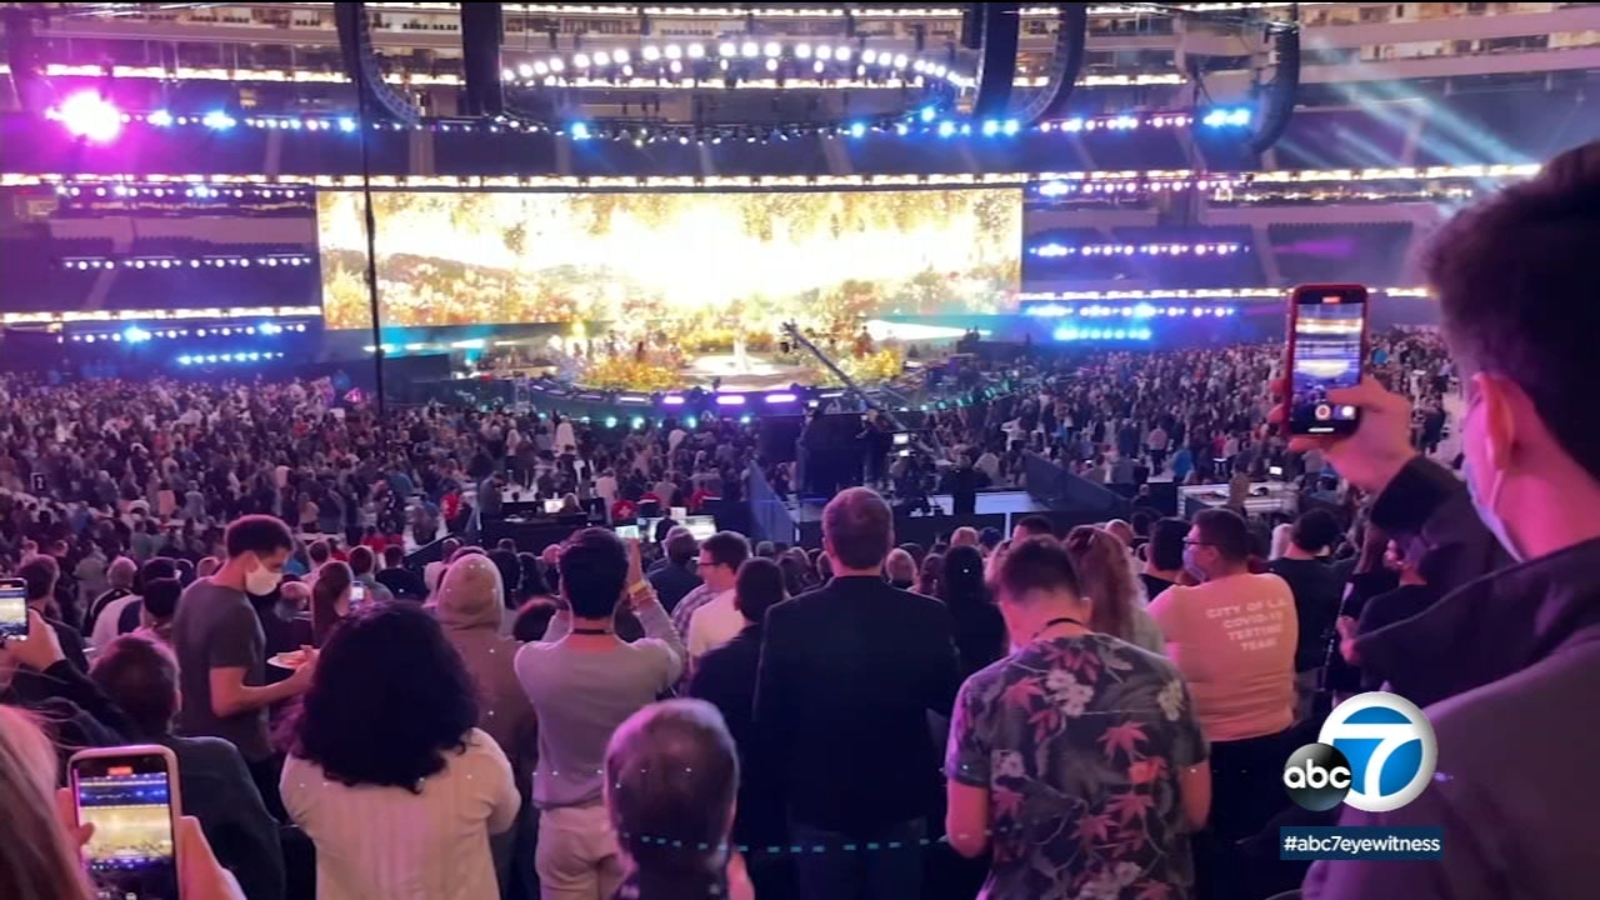 SoFi Stadium hosts vax awareness concert with performances from Jennifer Lopez, Foo Fighters and more